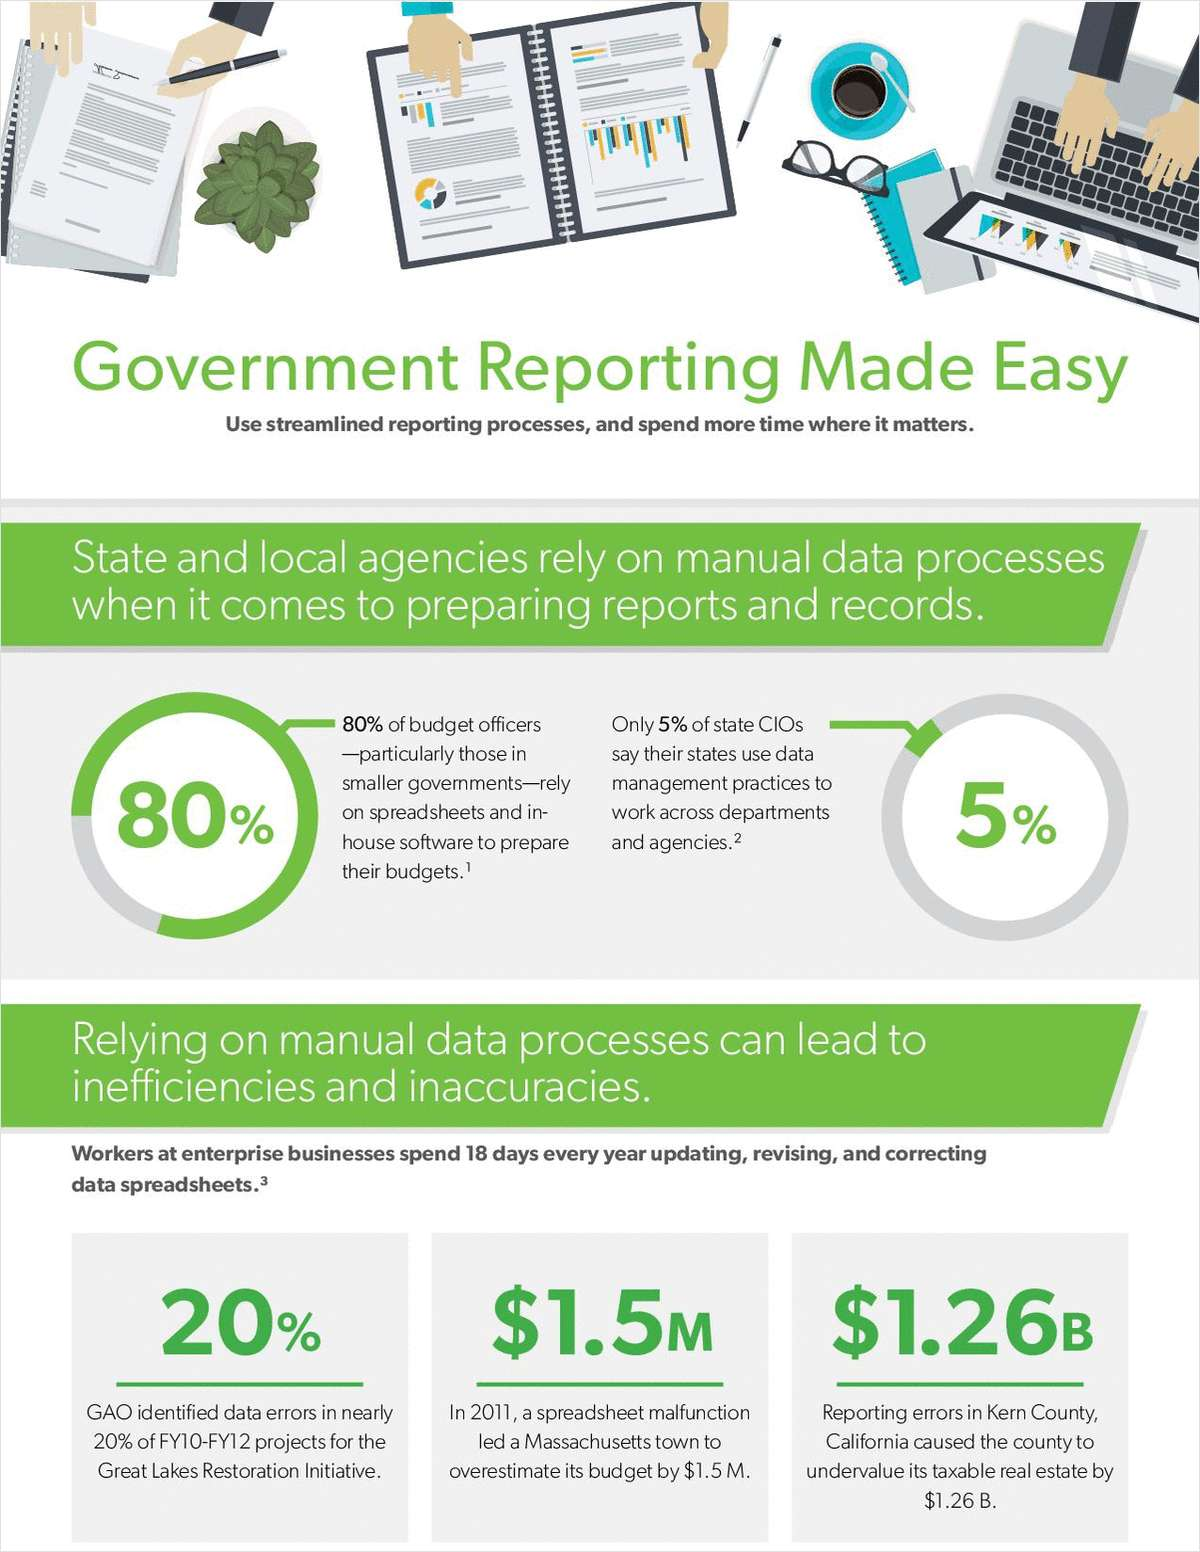 How Streamlined Reporting Processes Make Government Reporting Easy